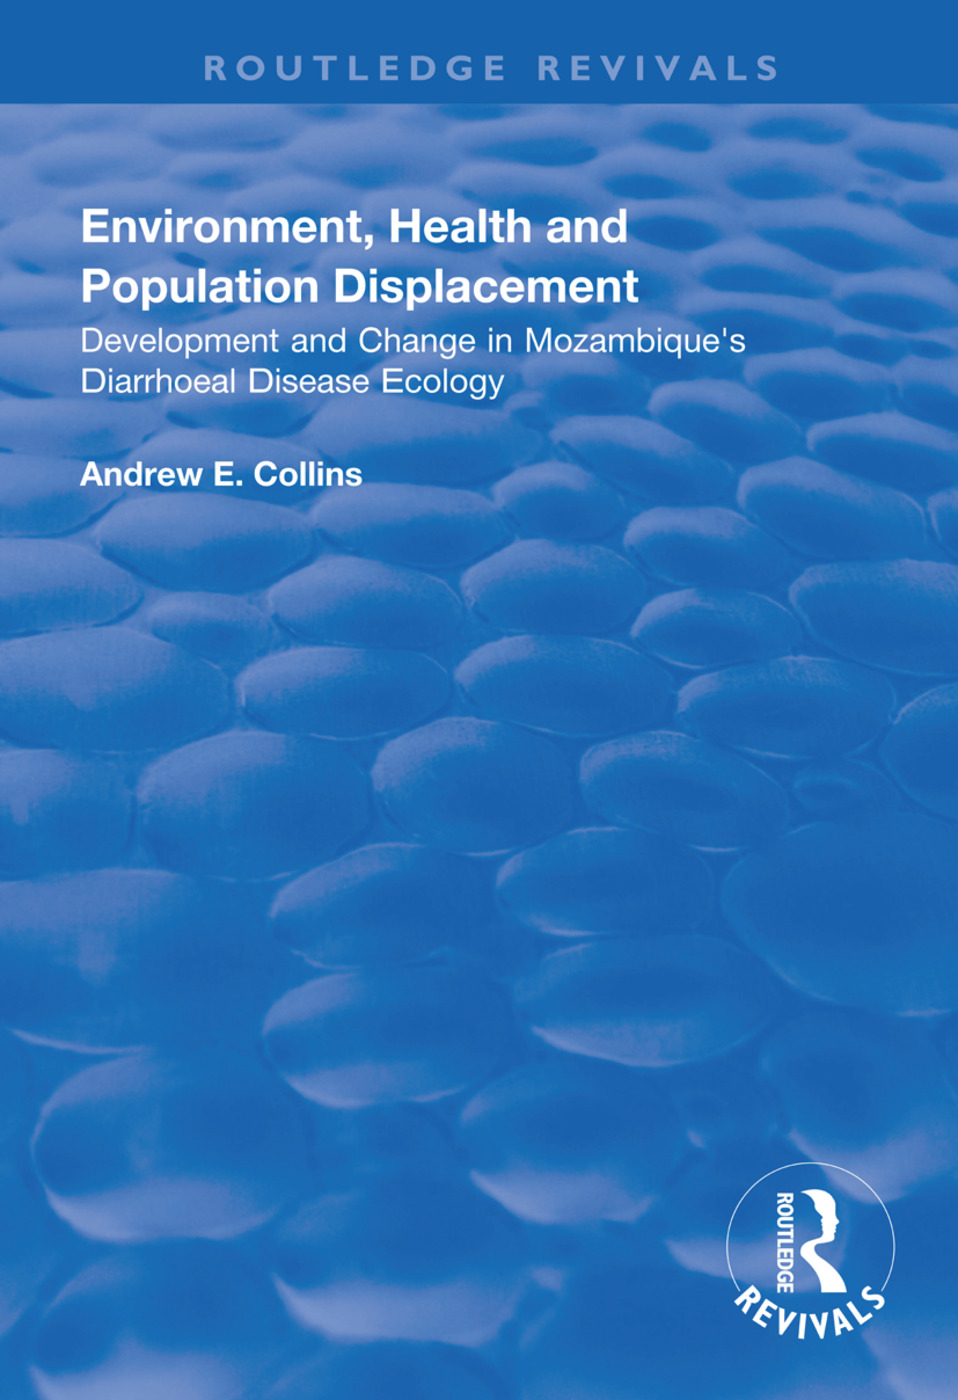 Environment, Health and Population Displacement: Development and Change in Mozambique's Diarrhoeal Disease Ecology book cover